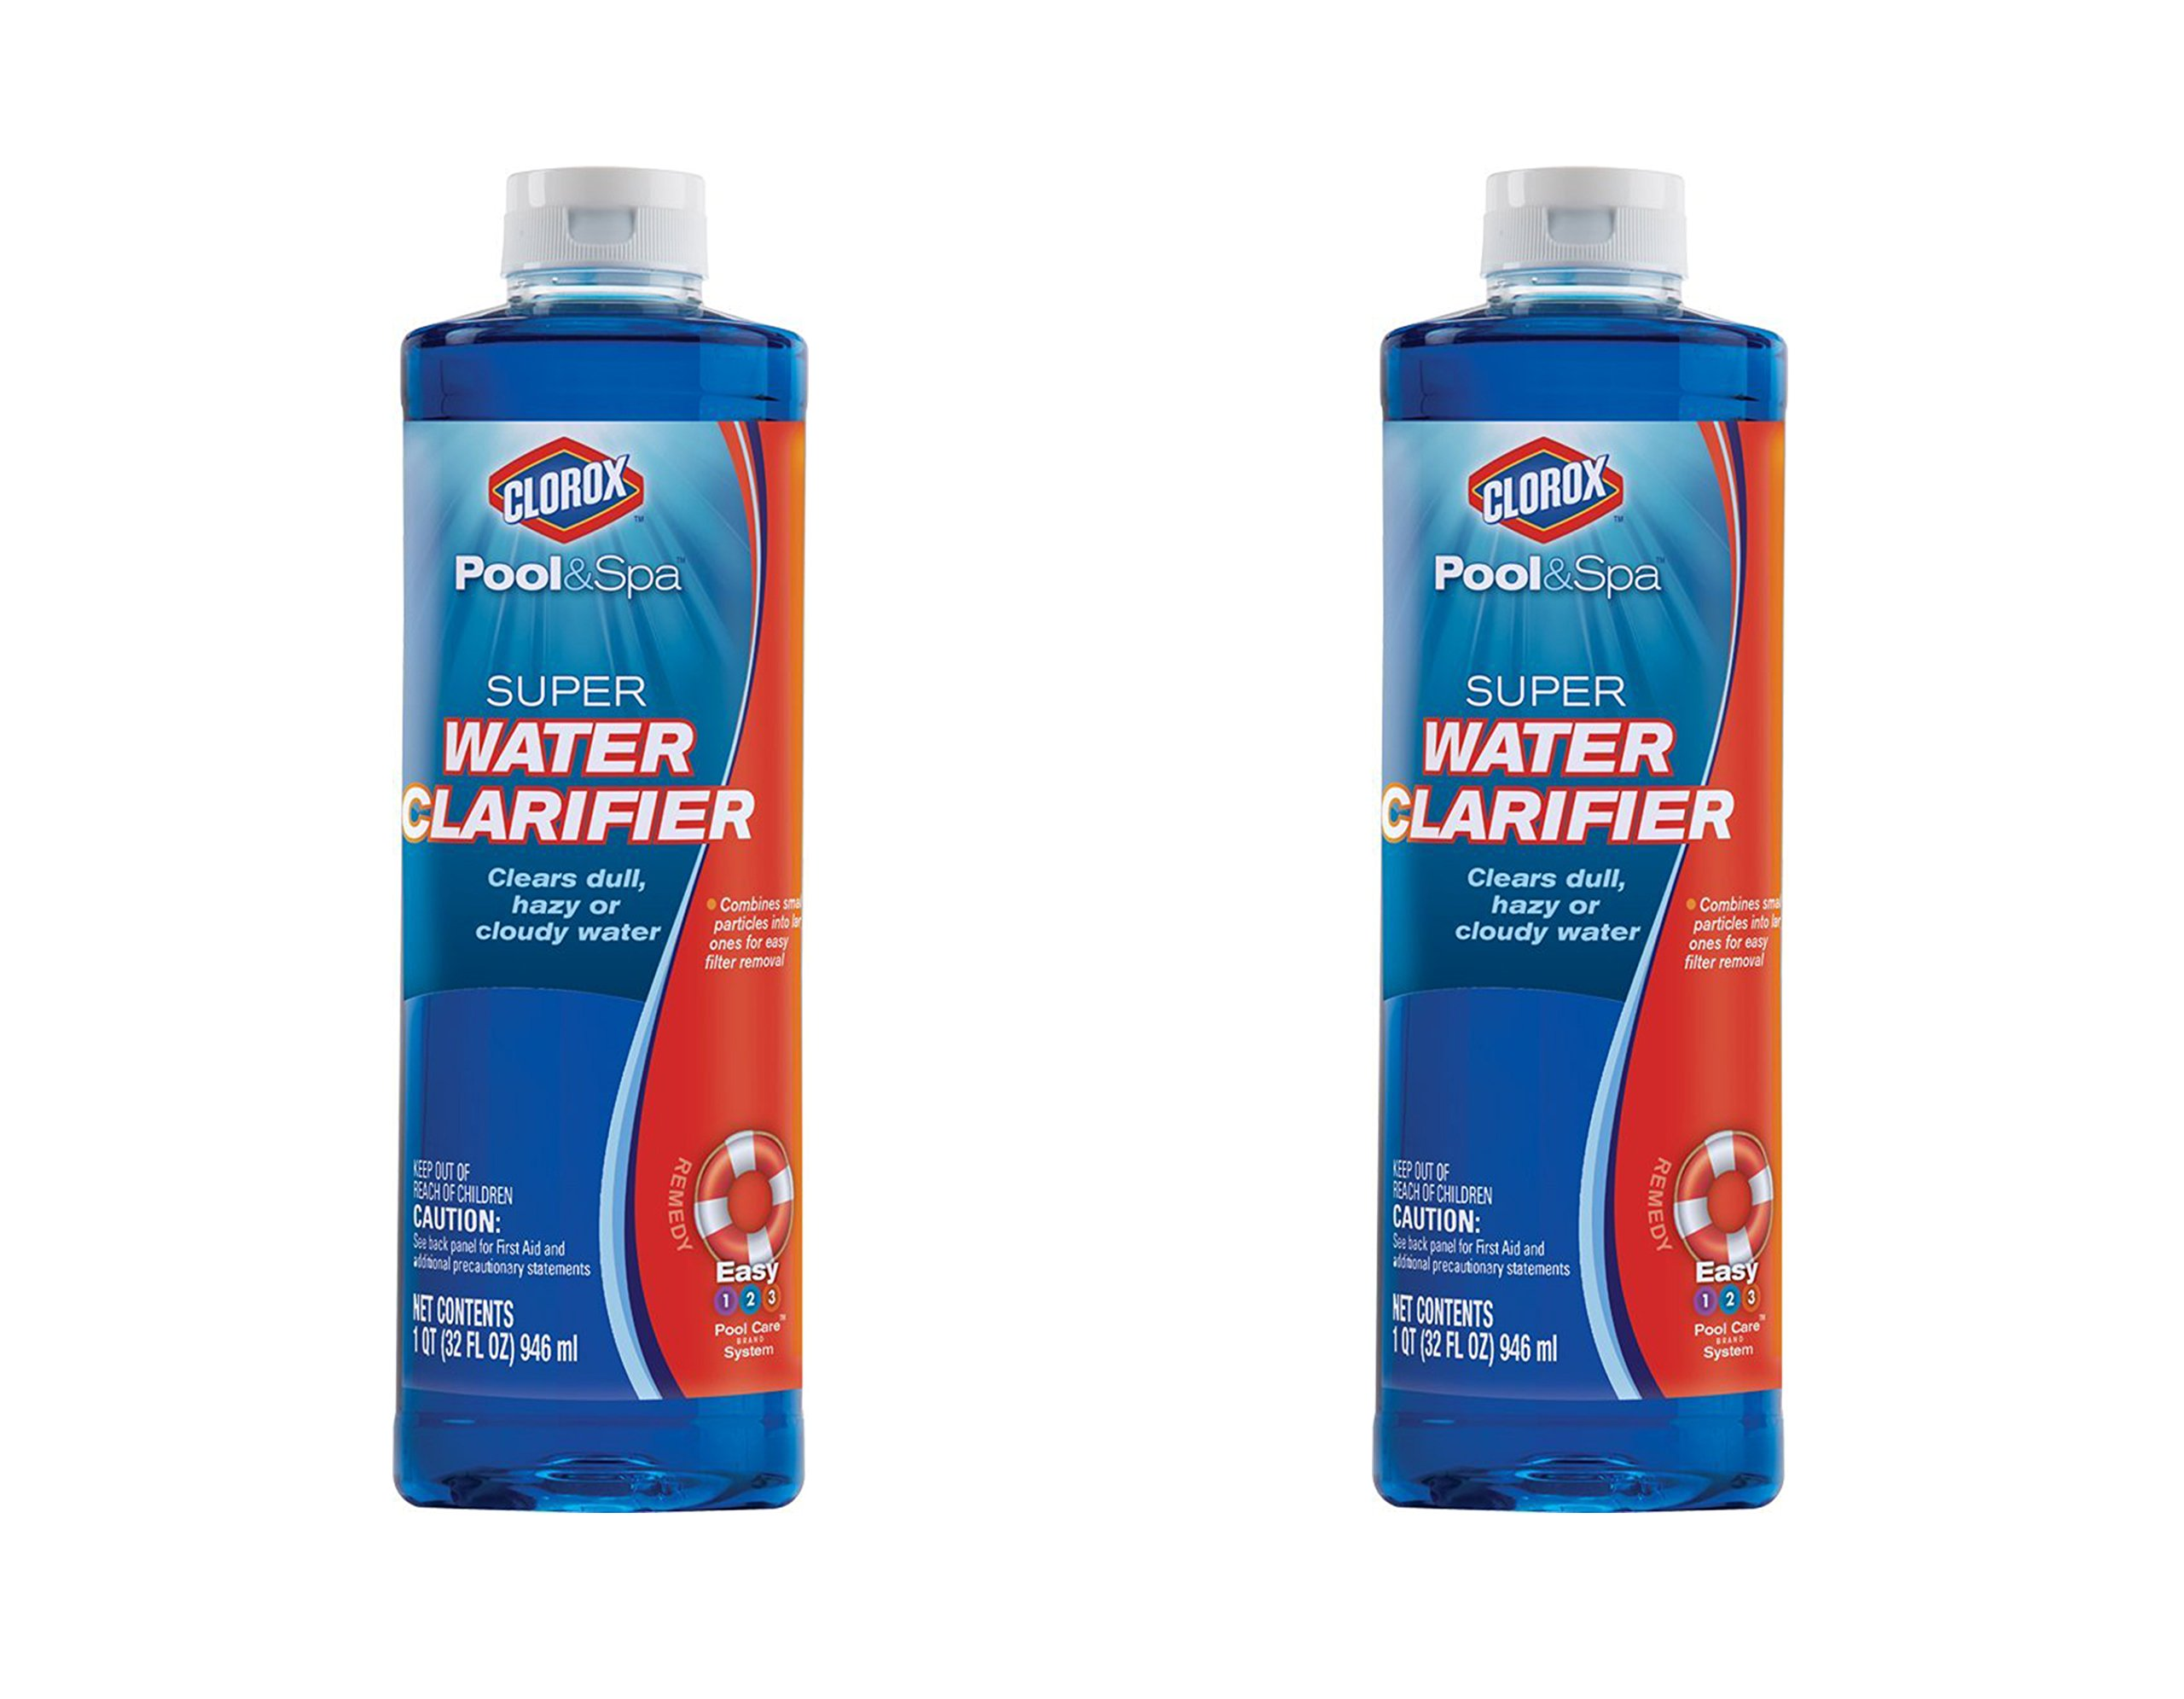 Clorox Pool&Spa Super Water Clarifier, 1-Quart 58032CLX (2, 32 fl oz)